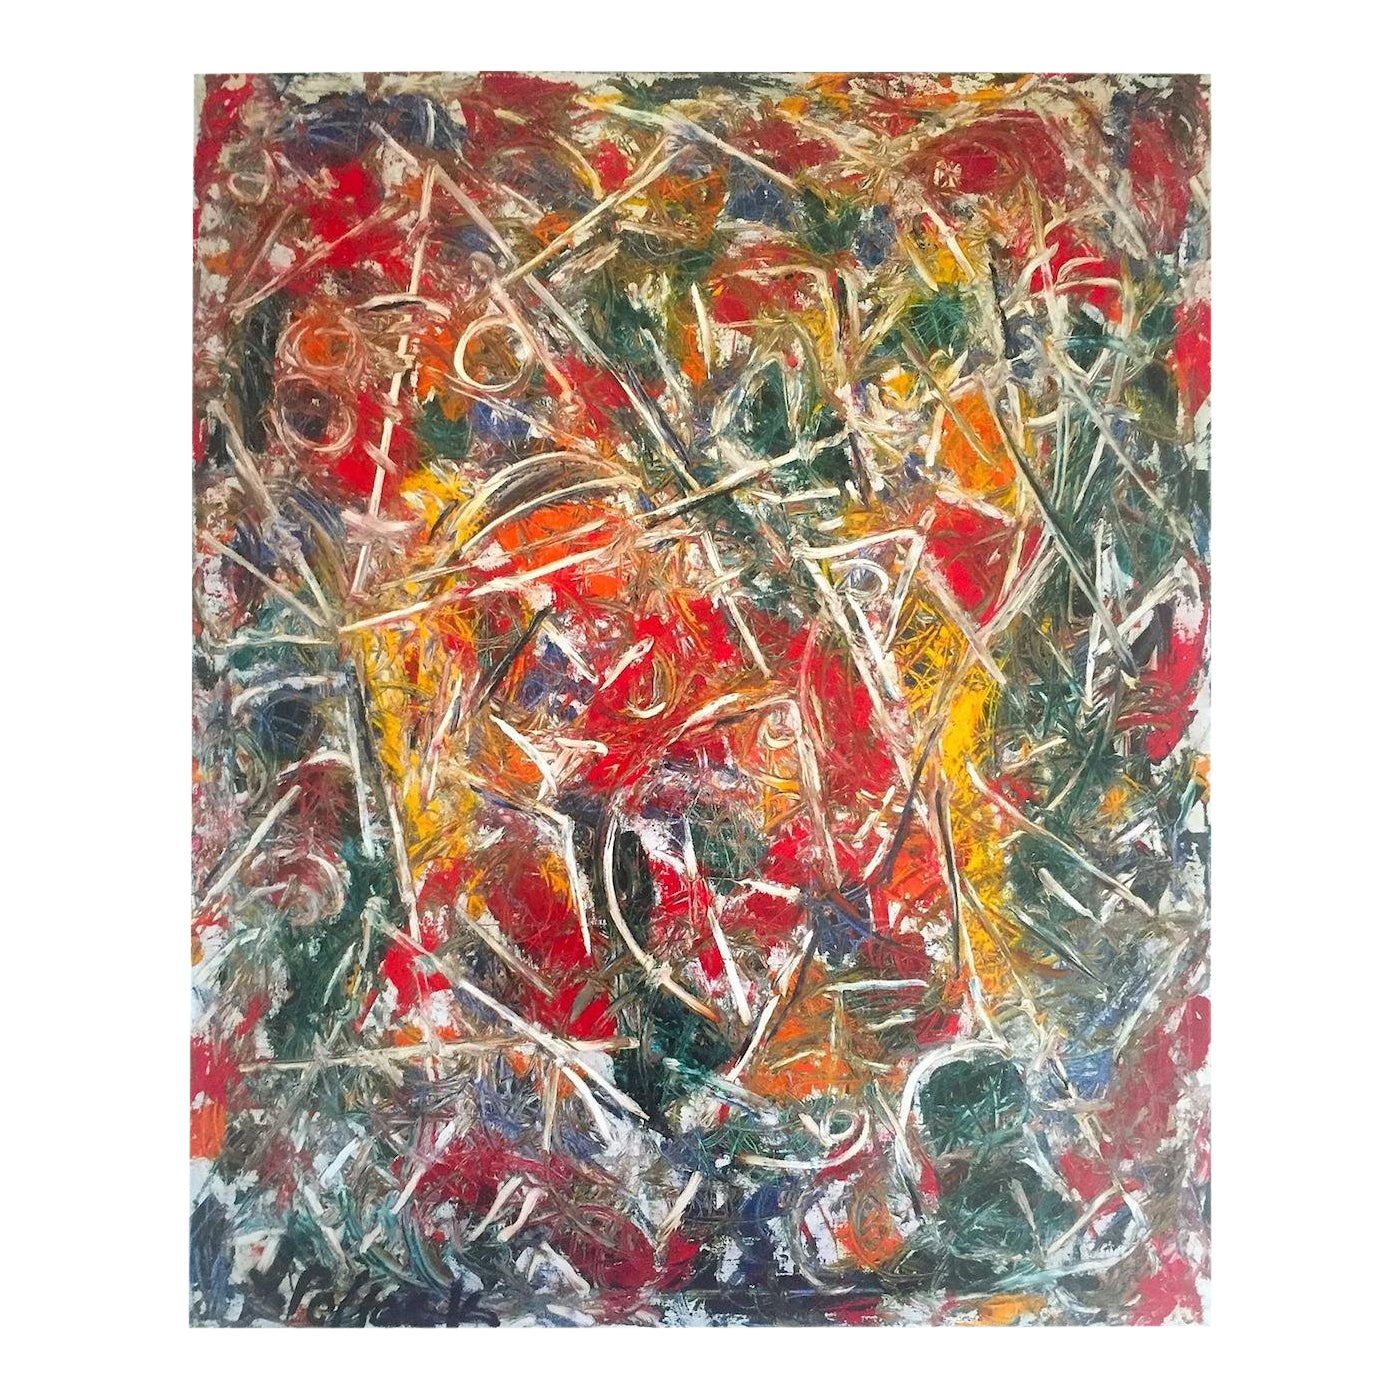 Jackson pollock foundation abstract expressionist lithograph collectors print croaking movement 1946 chairish